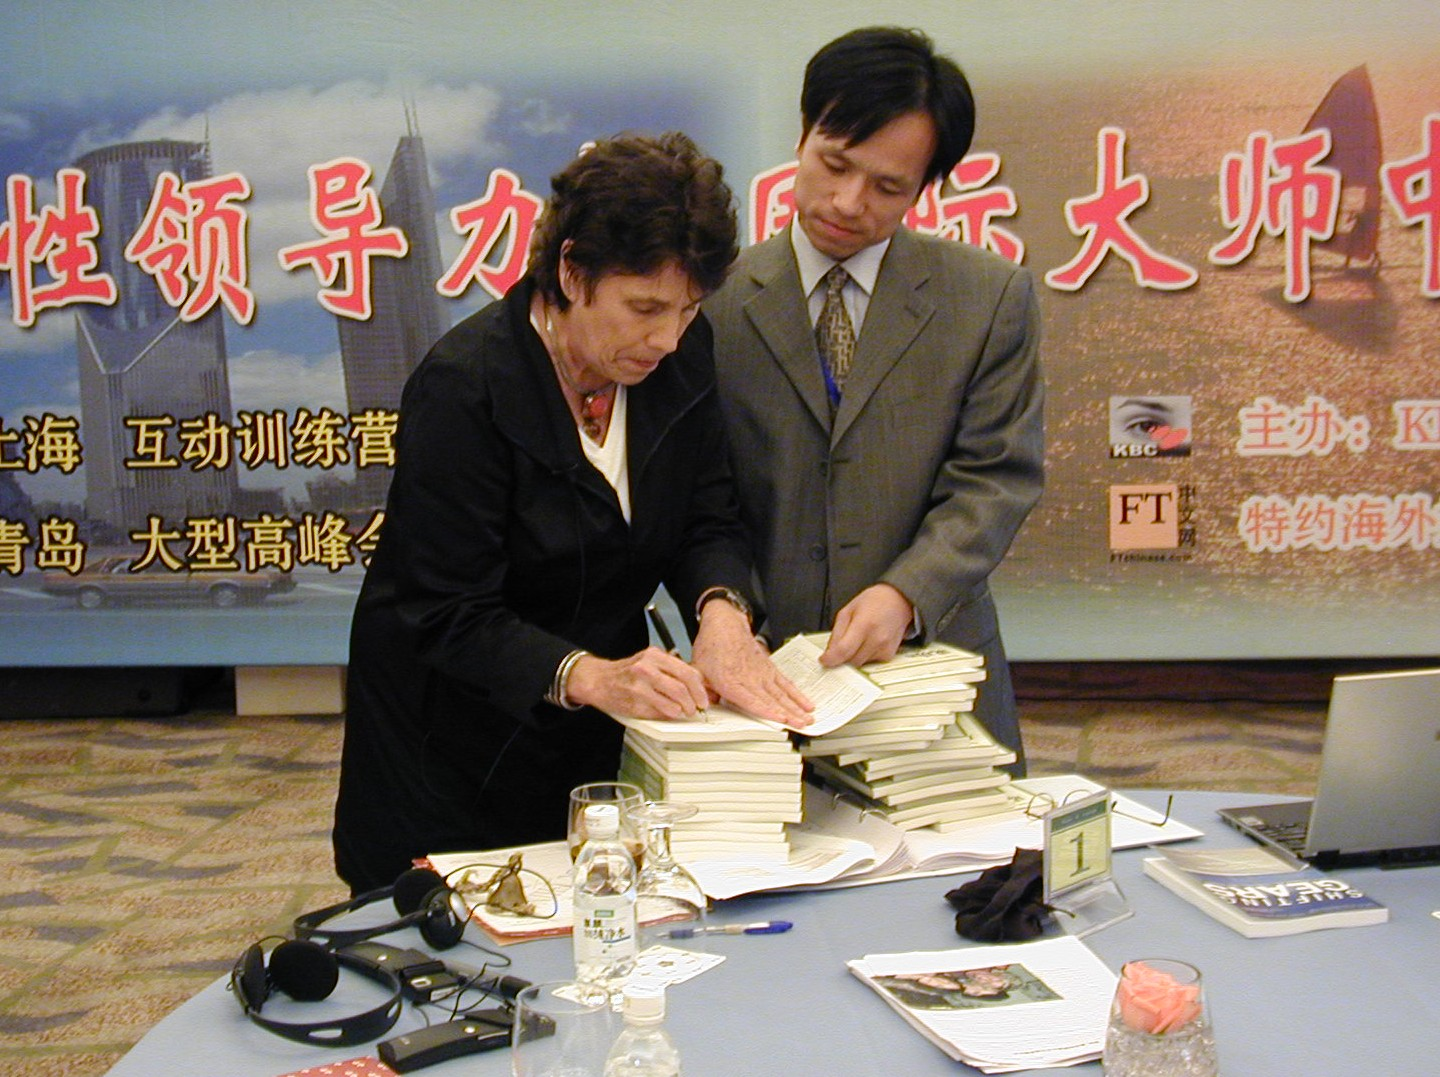 Book signing for Joy of Success Chinese translation in Shanghai